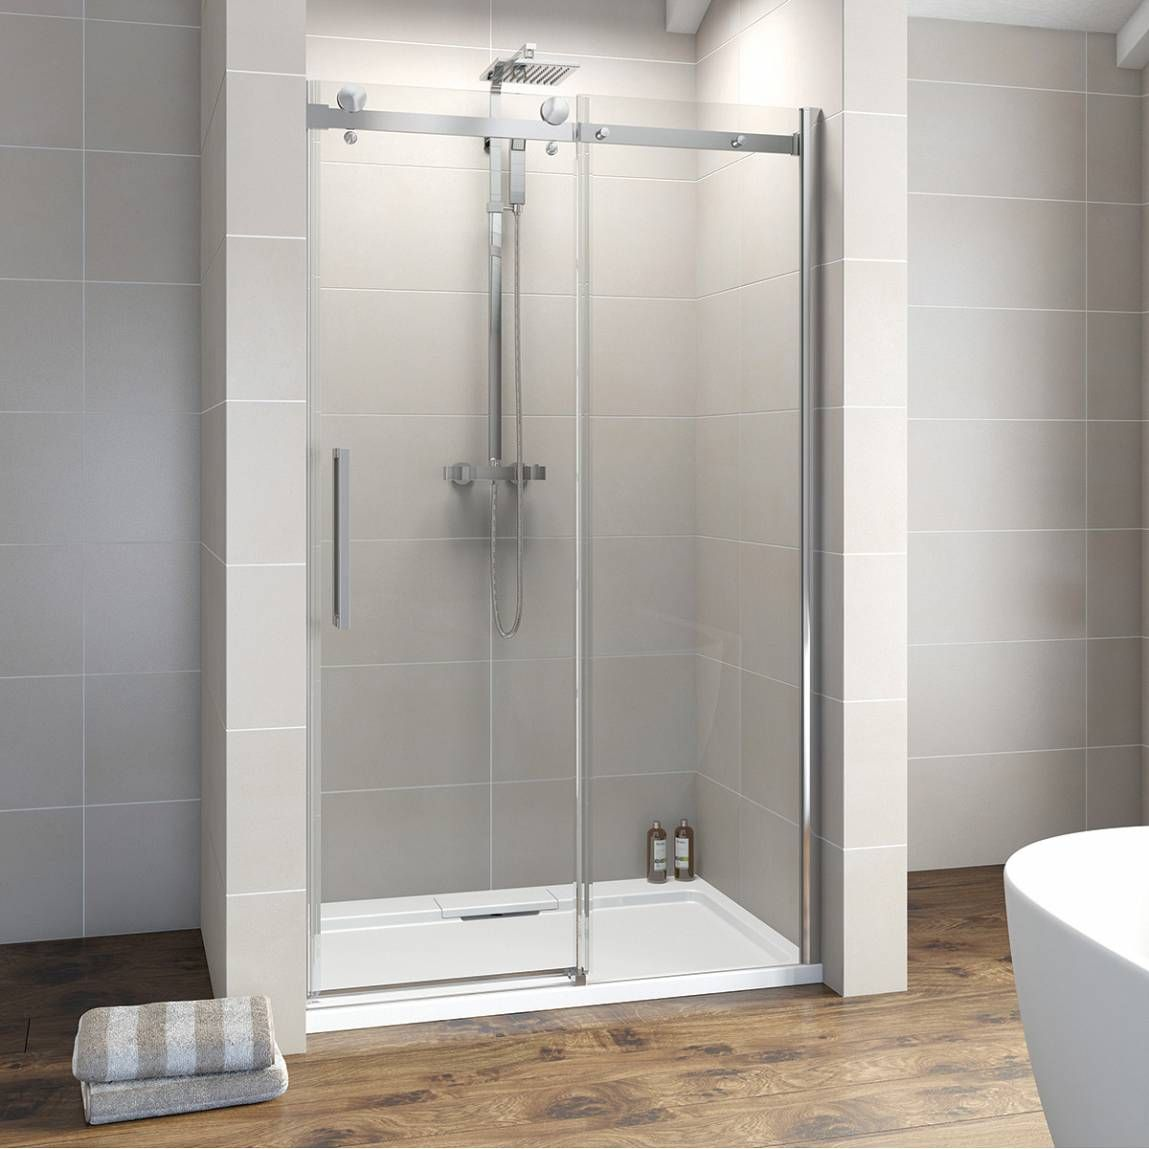 V8 Frameless Sliding Shower Door 1200 Mod 8 Pinterest Frameless Shower Shower Doors And